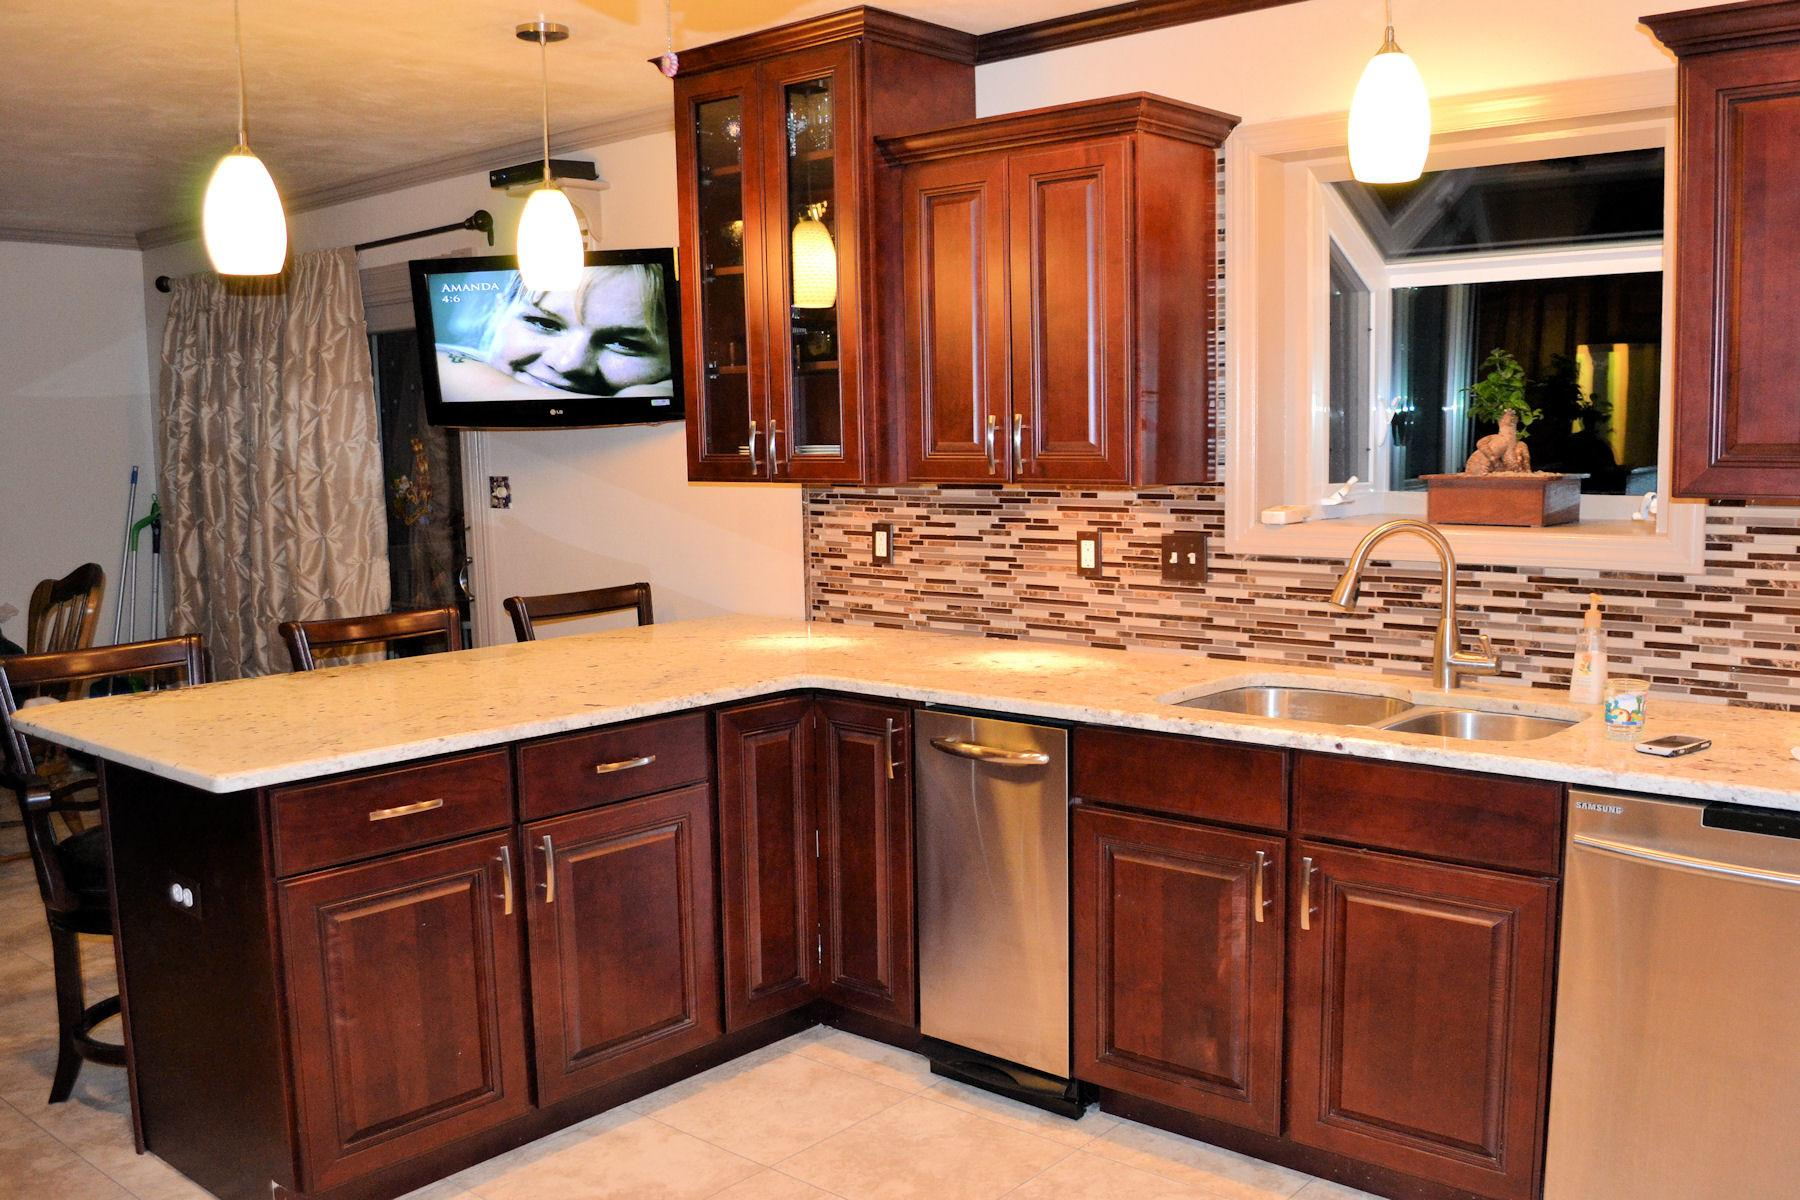 Kitchen 2017 Average Cost Reface Cabinets